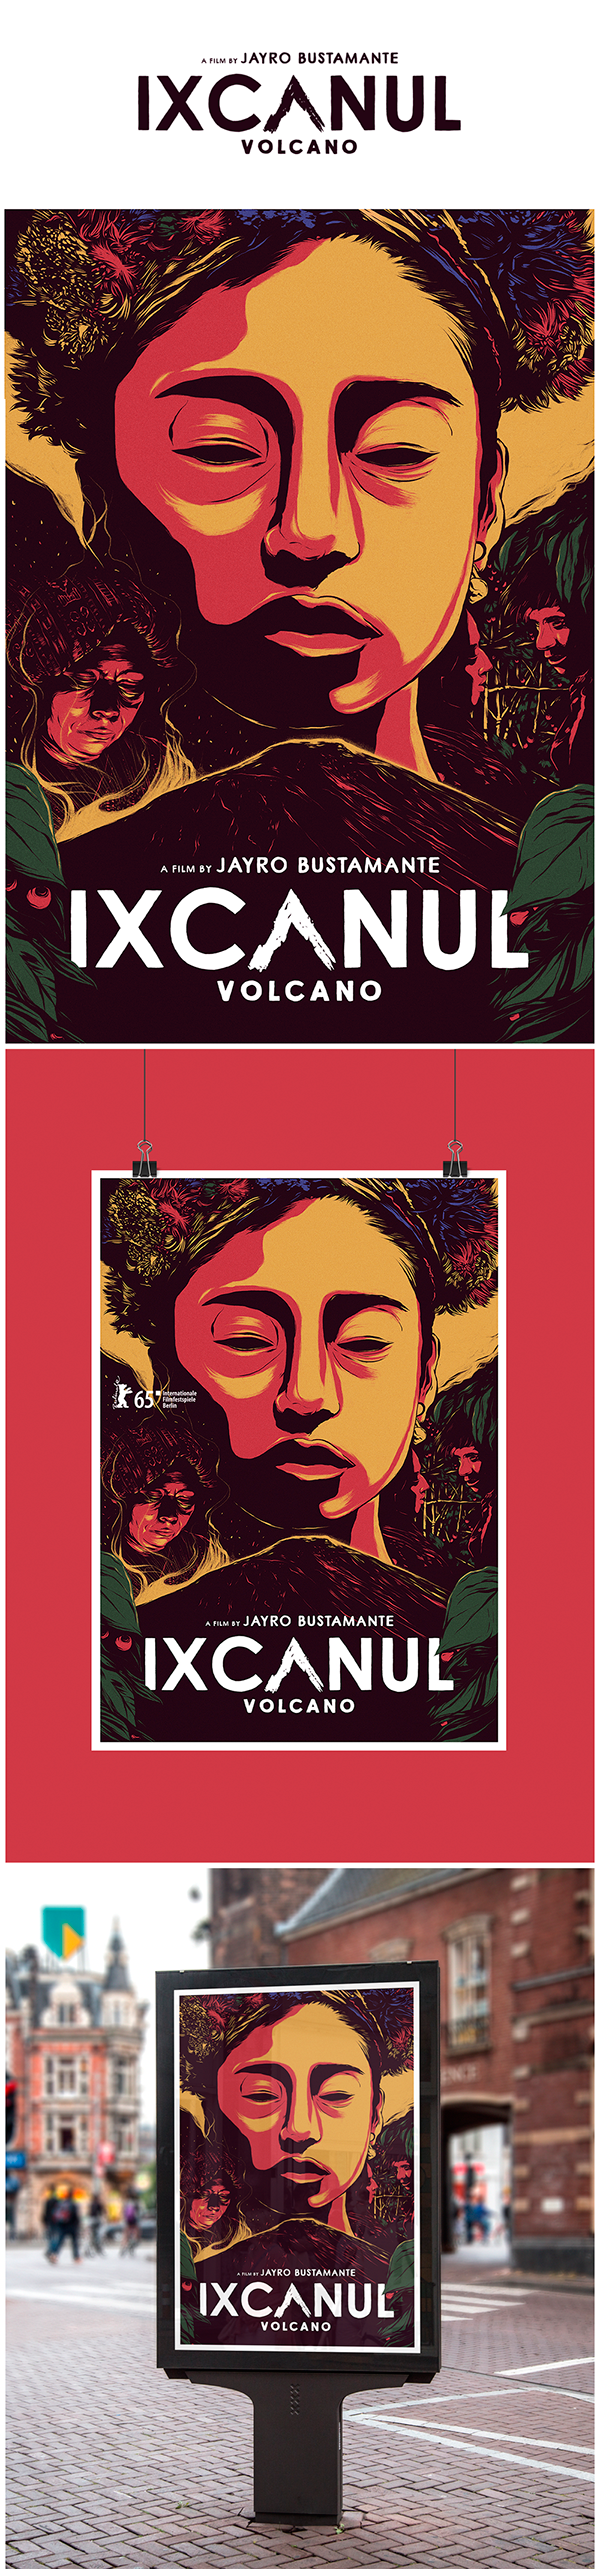 Ixcanul (Volcano) / Alternative Poster by Luis Pinto